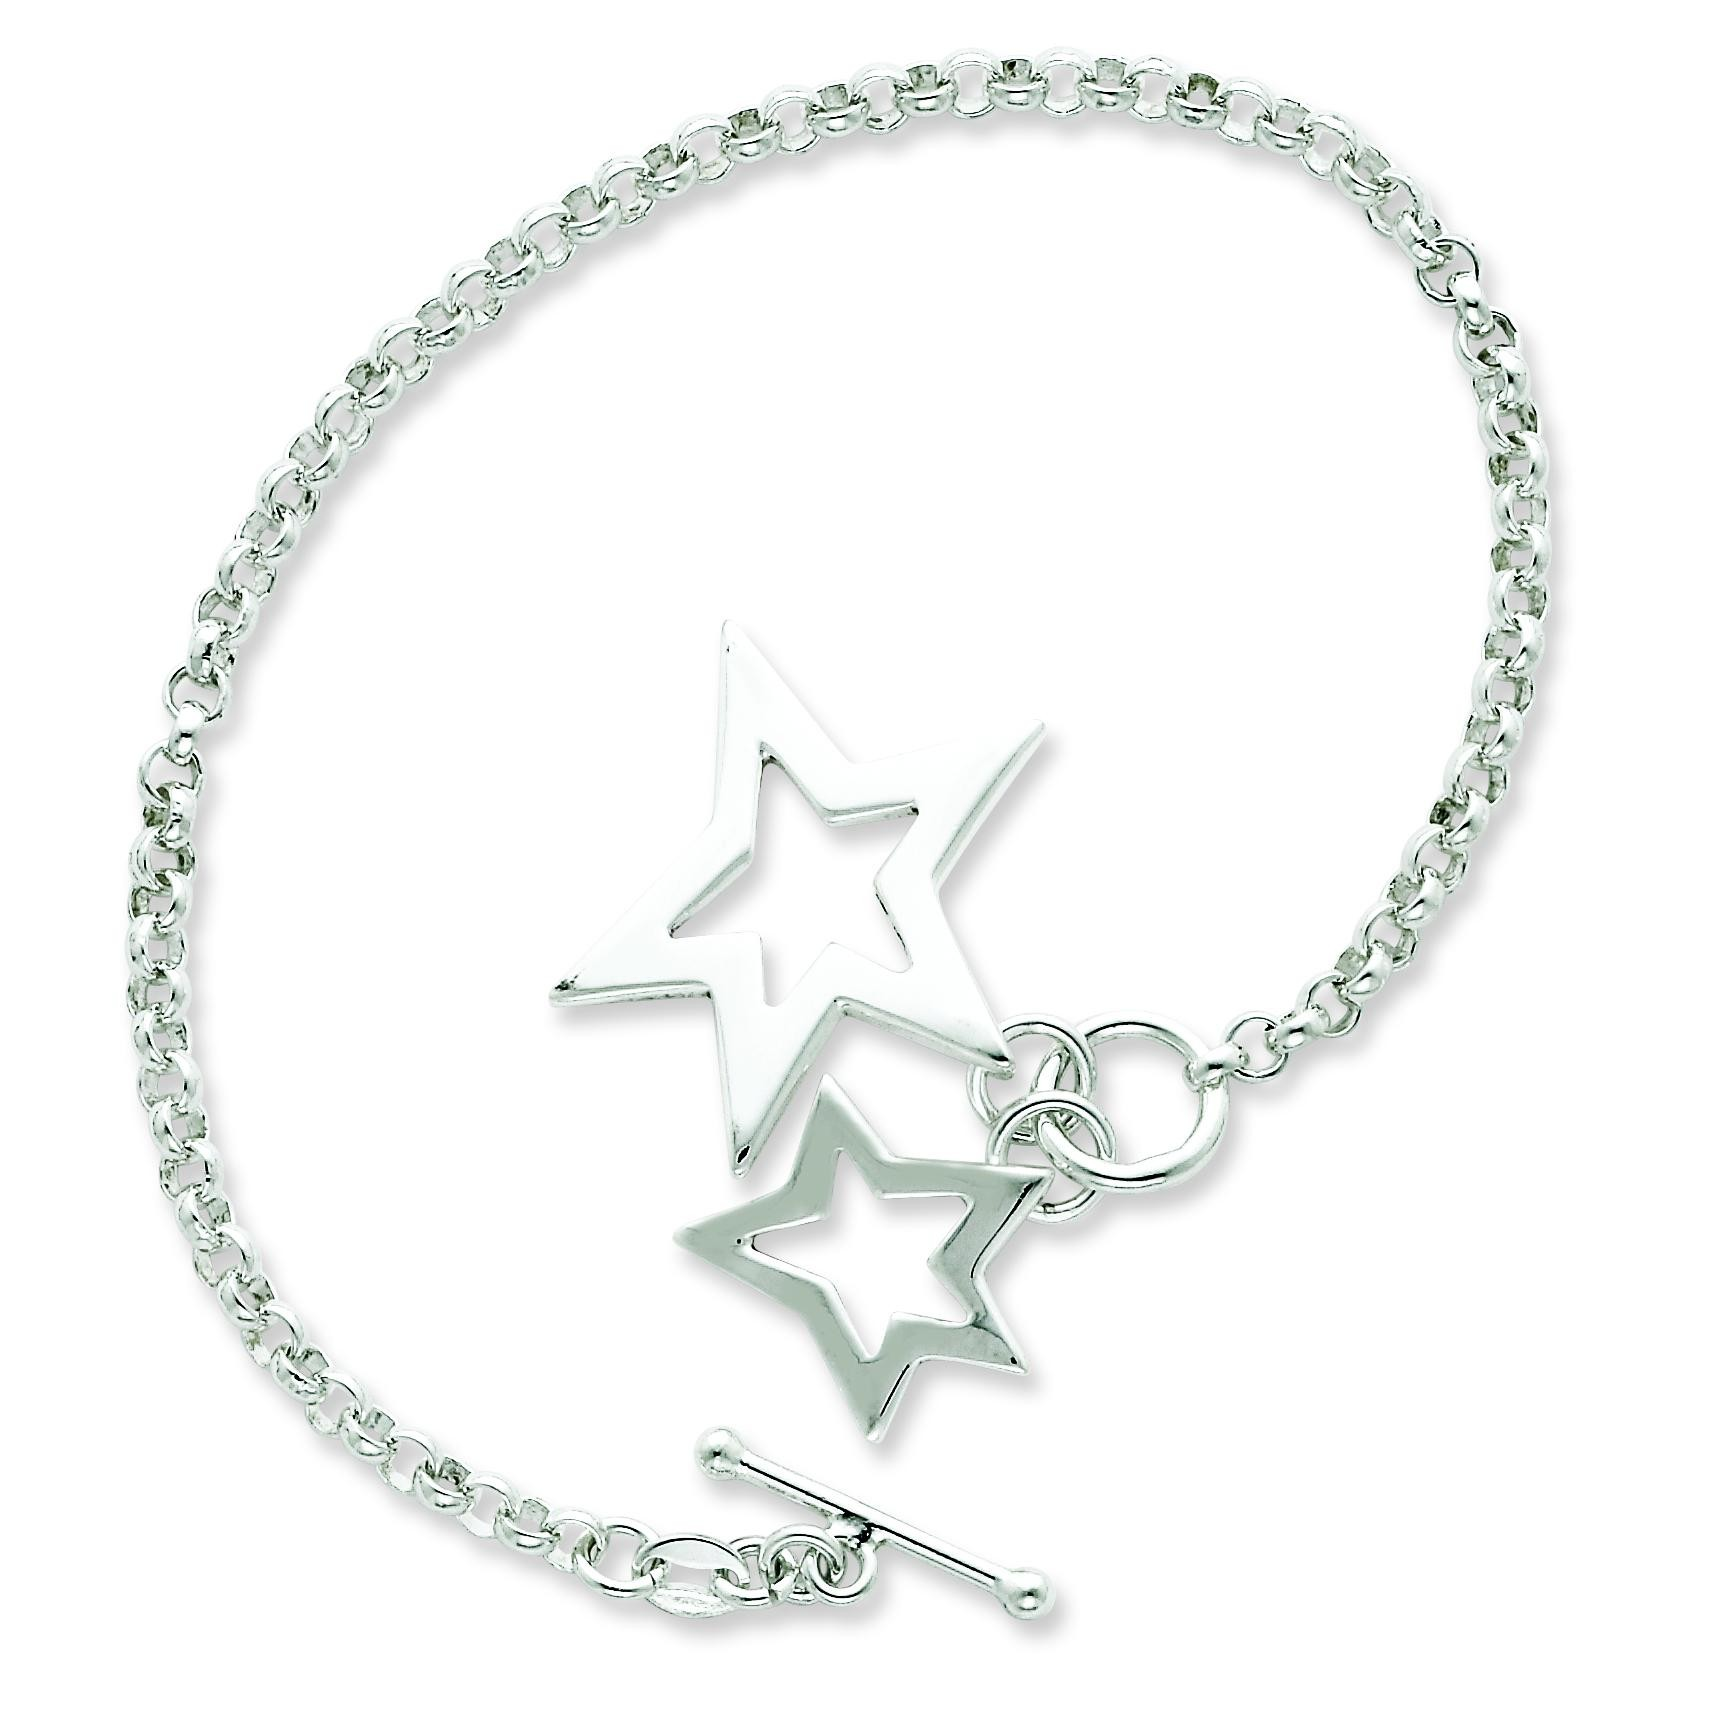 Fancy Stars Bracelet in Sterling Silver